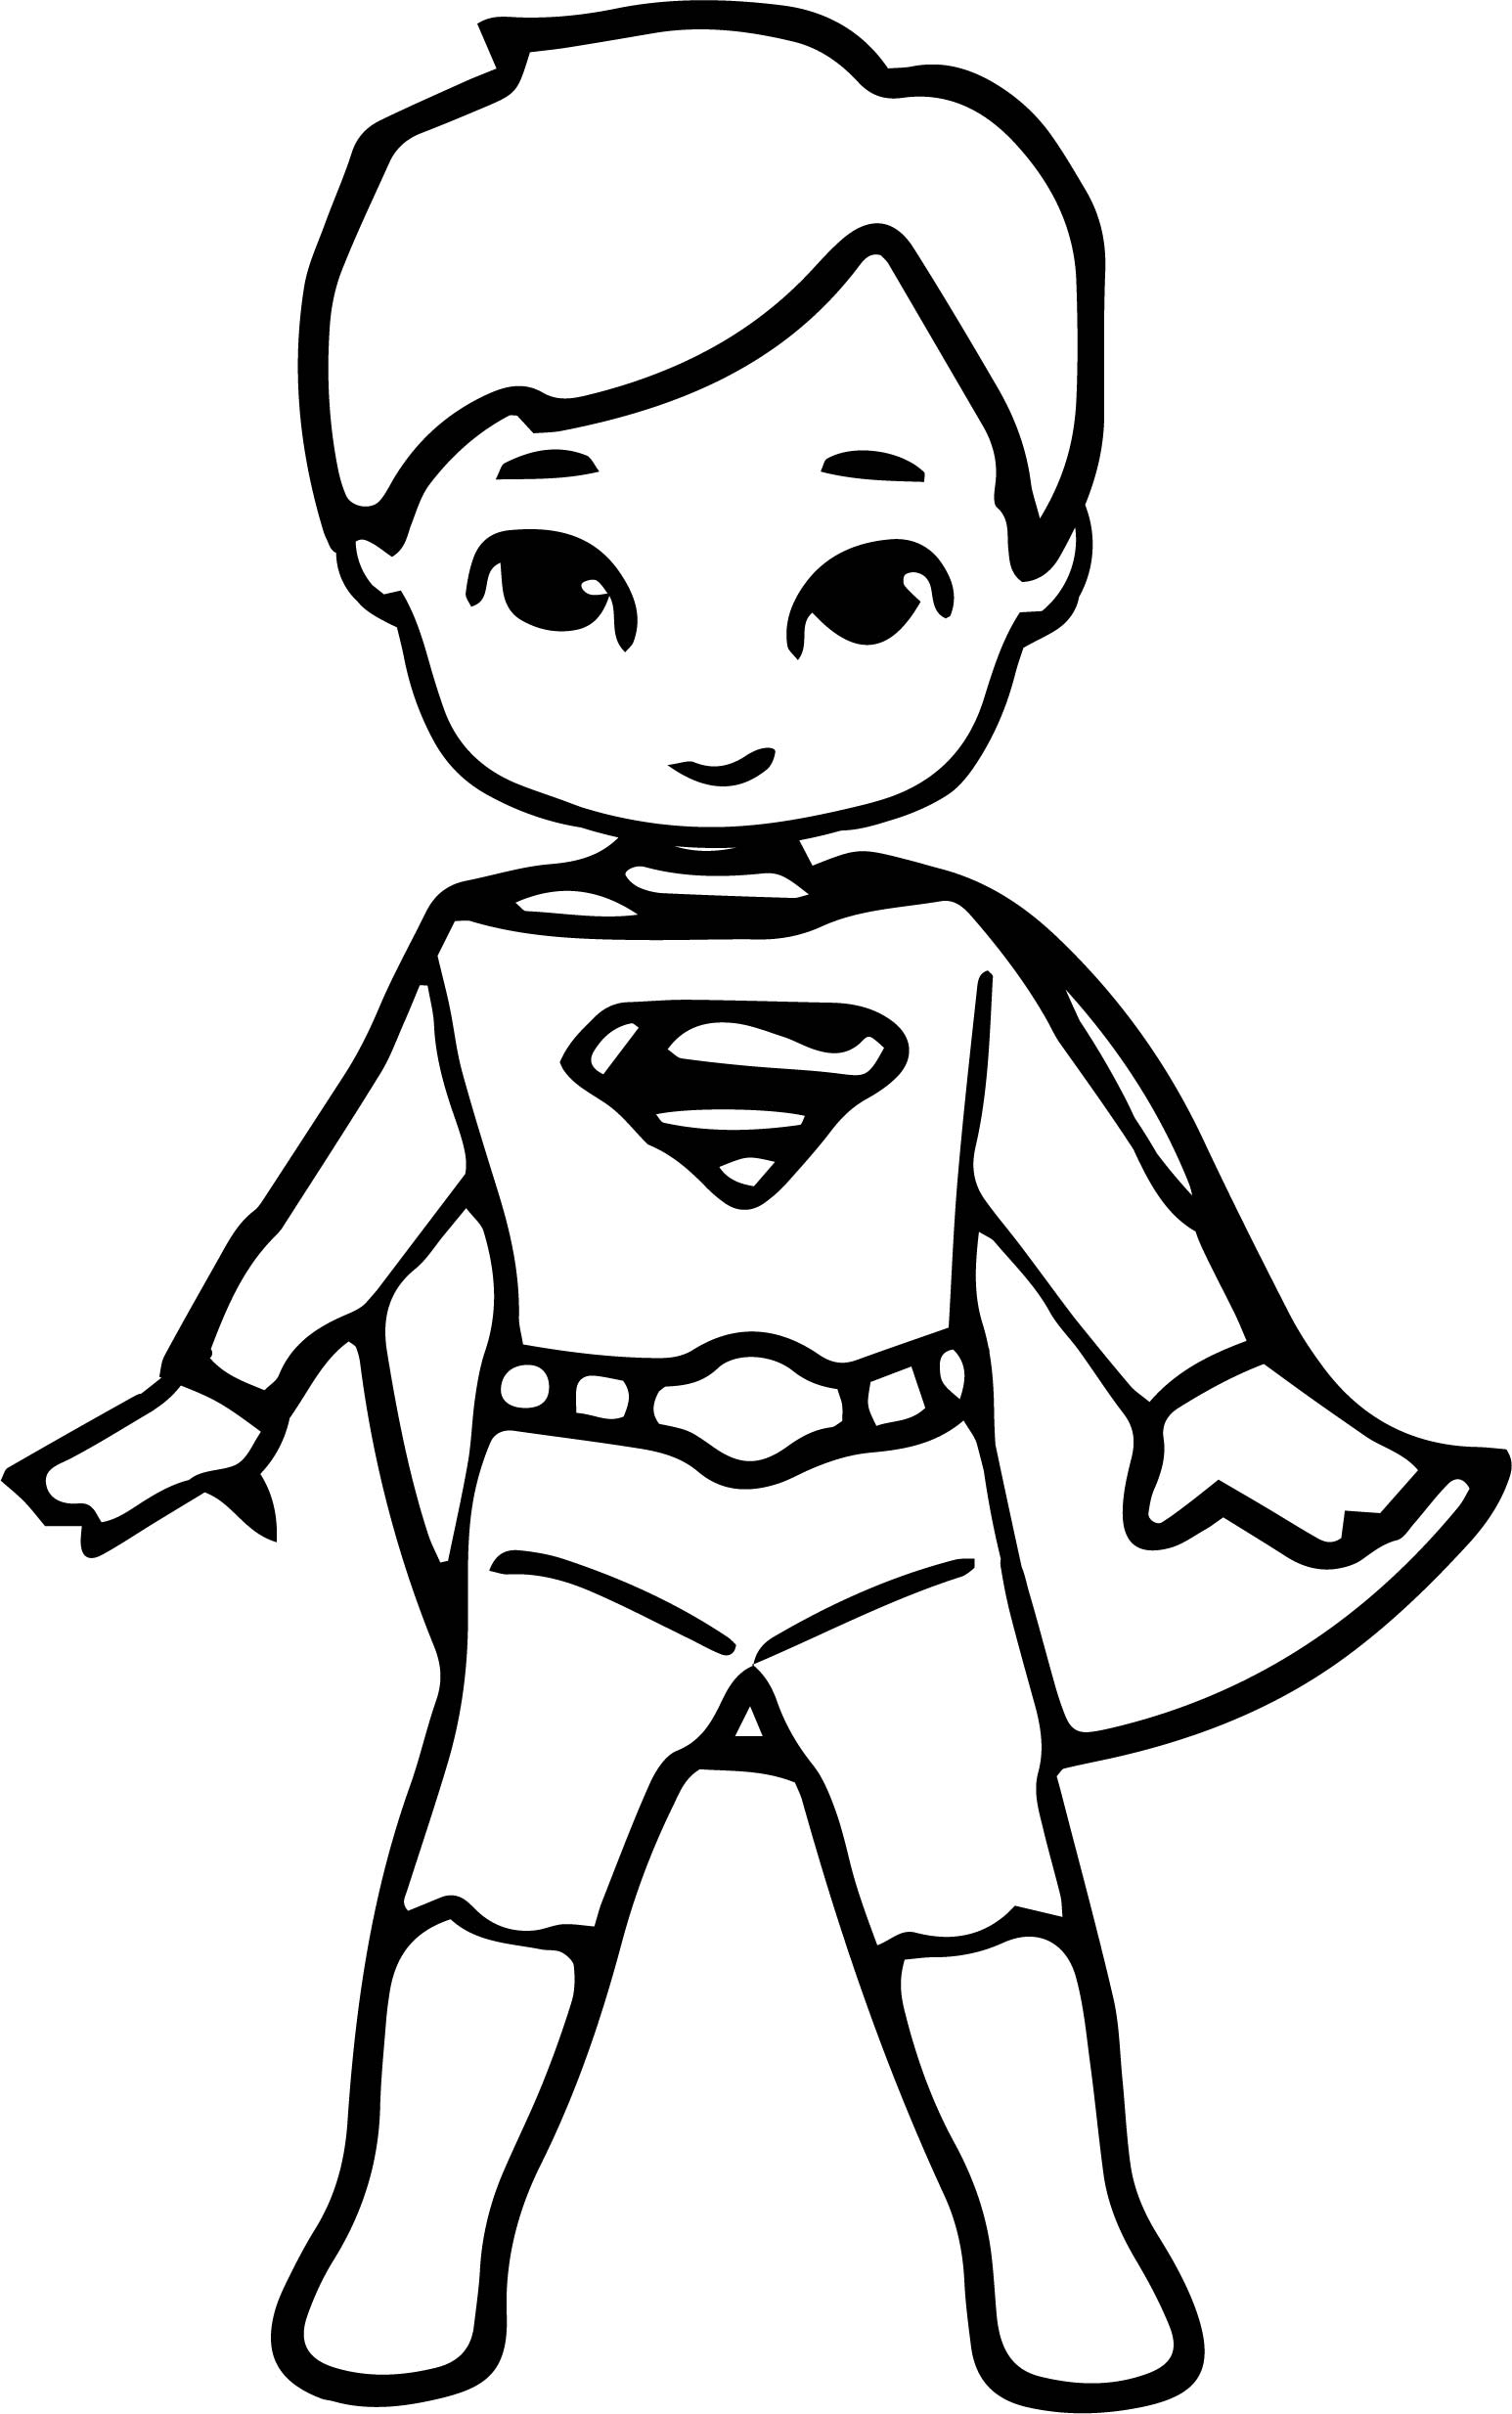 Waiting Cartoon Superhero Superman Kid Coloring Page